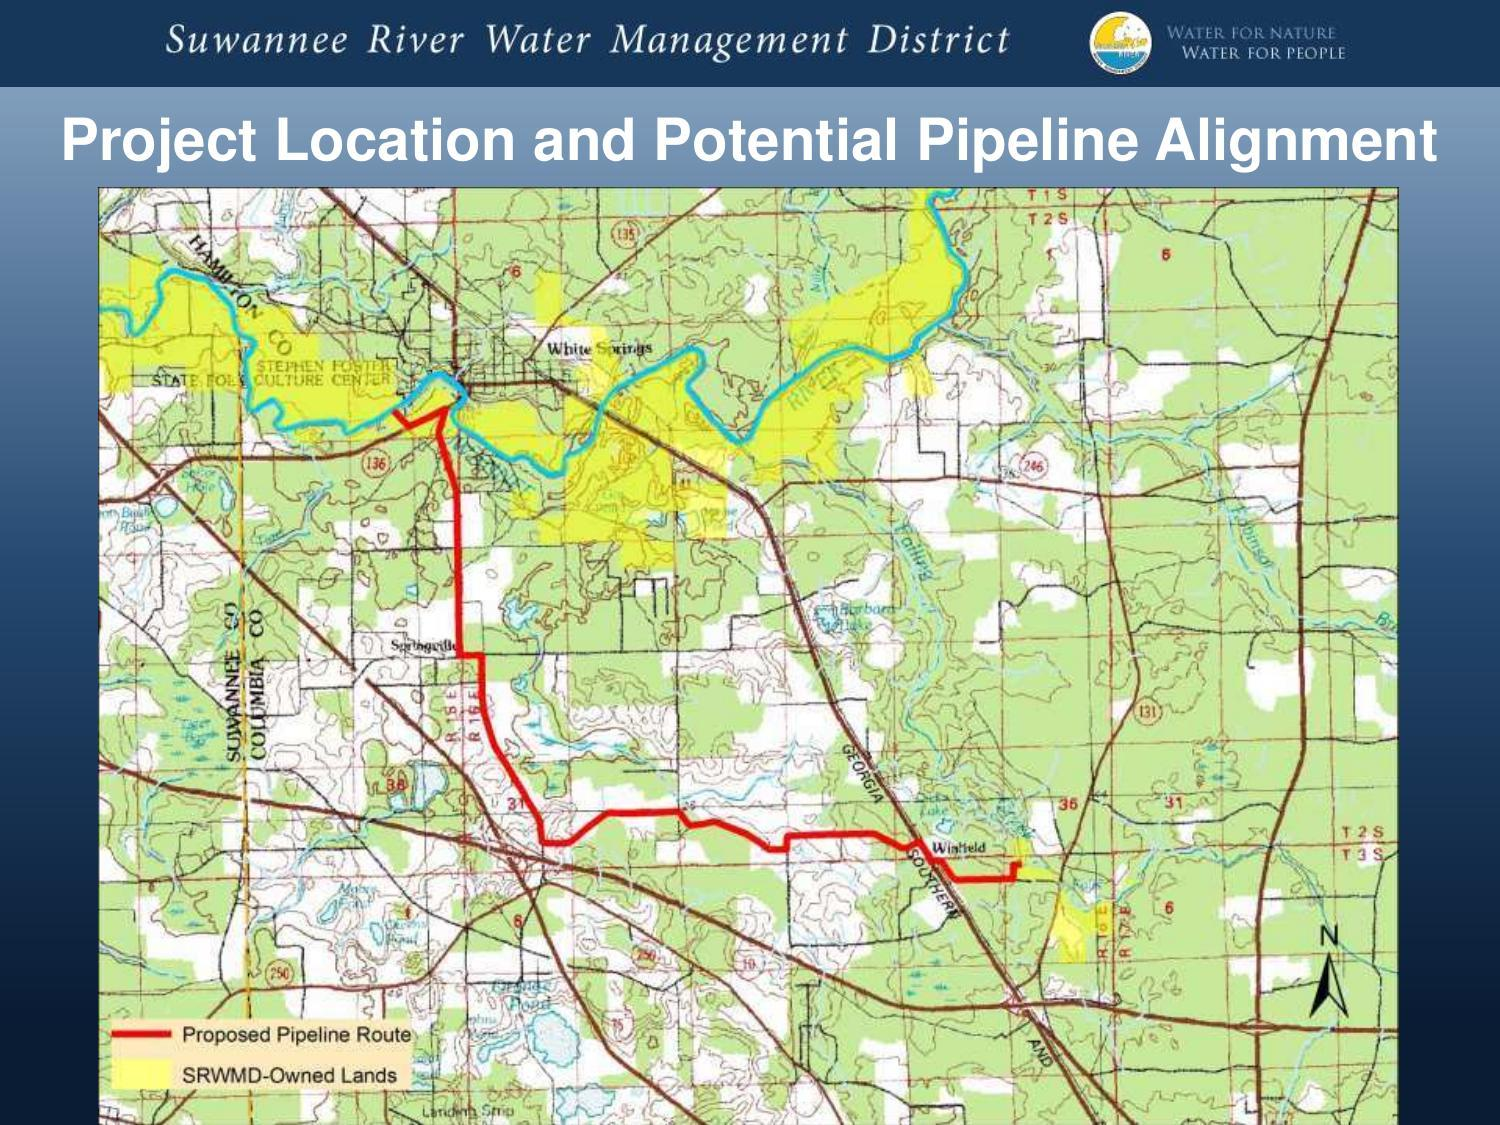 1500x1125 Project Location and Potential Pipeline Alignment, in Aquifer Recharge Concepts in the SRWMD, by Dale Jenkins, 29 January 2015